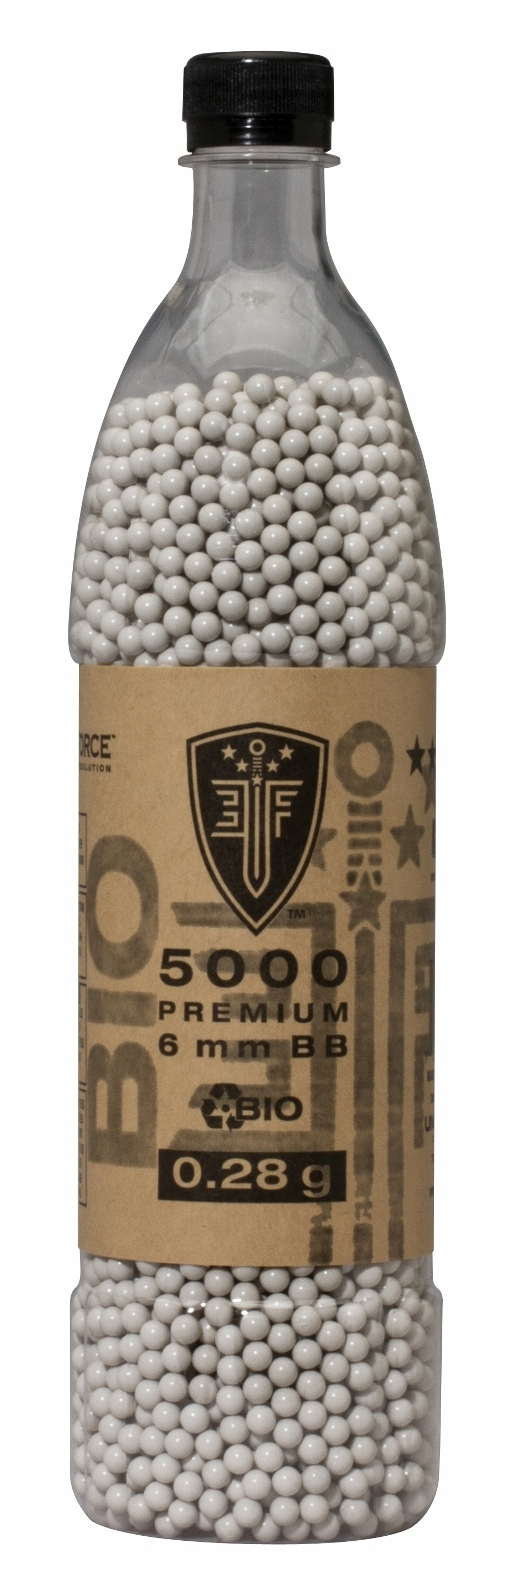 Elite Force .28g Competition BB's 5000ct.